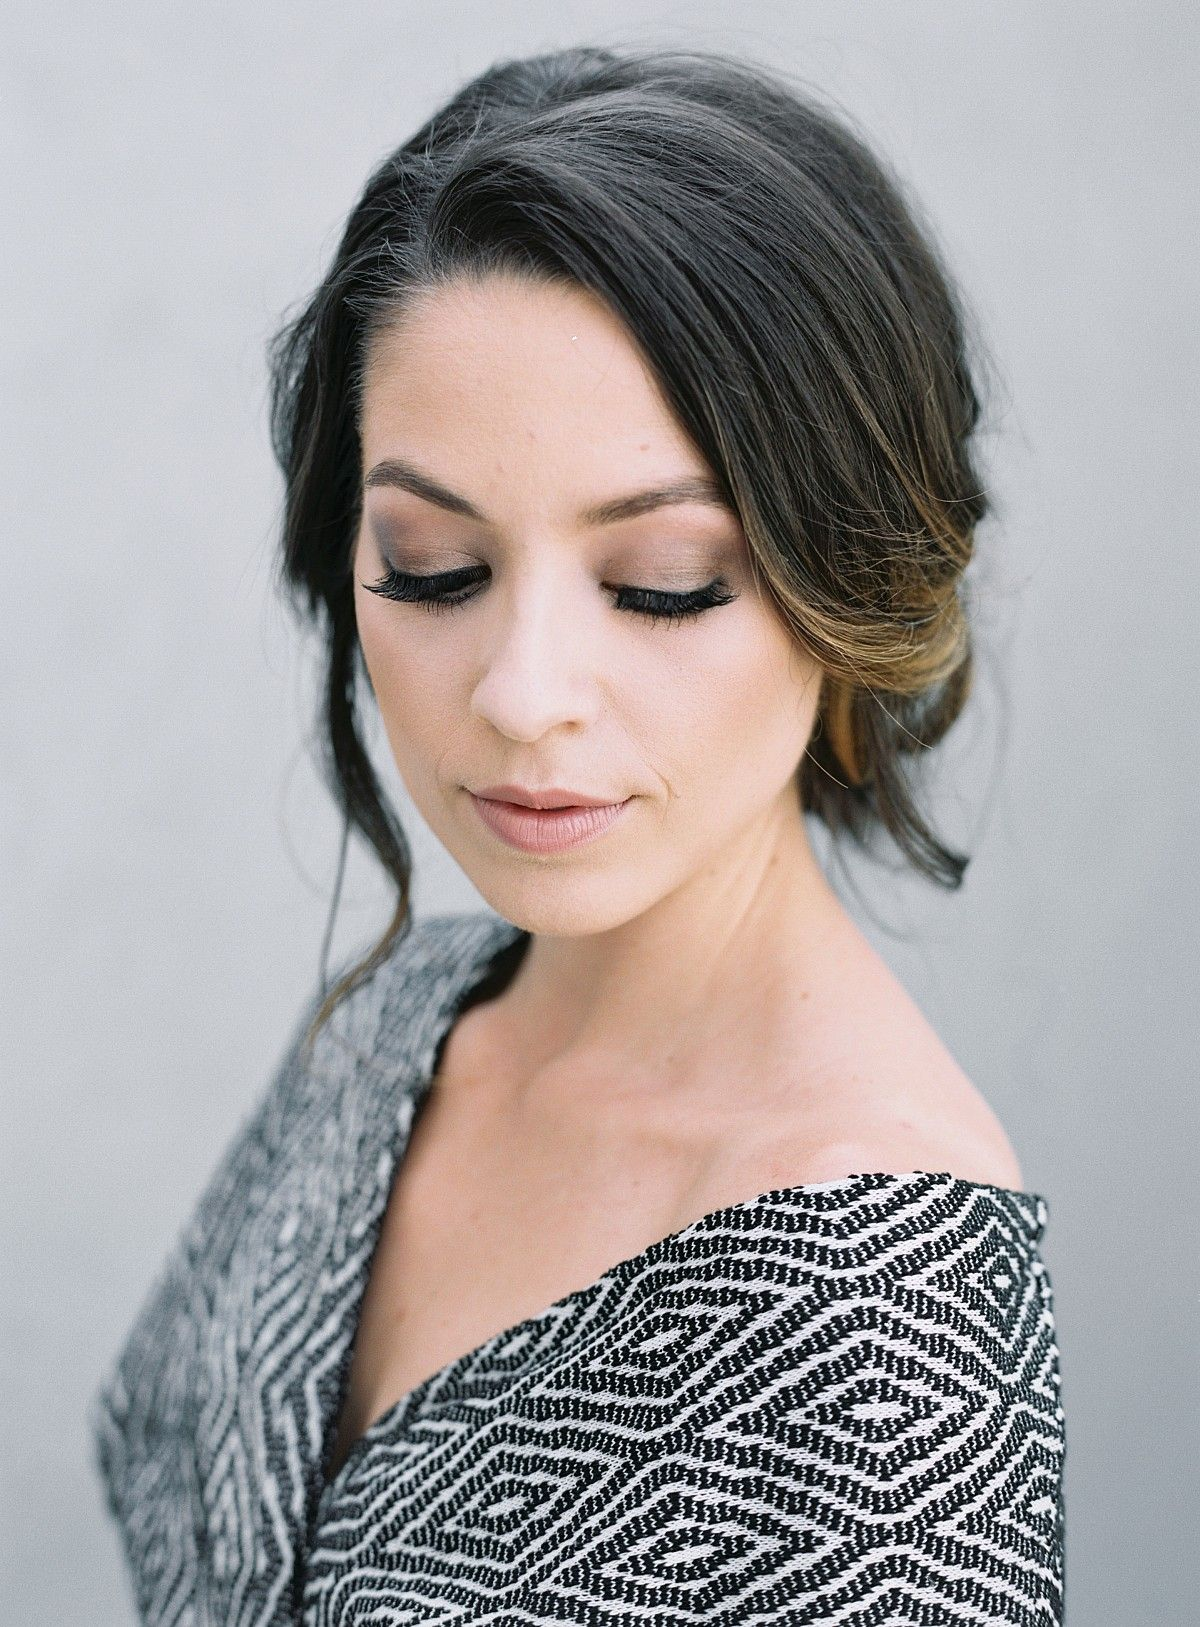 Wedding hair and makeup inspiration from Rouge